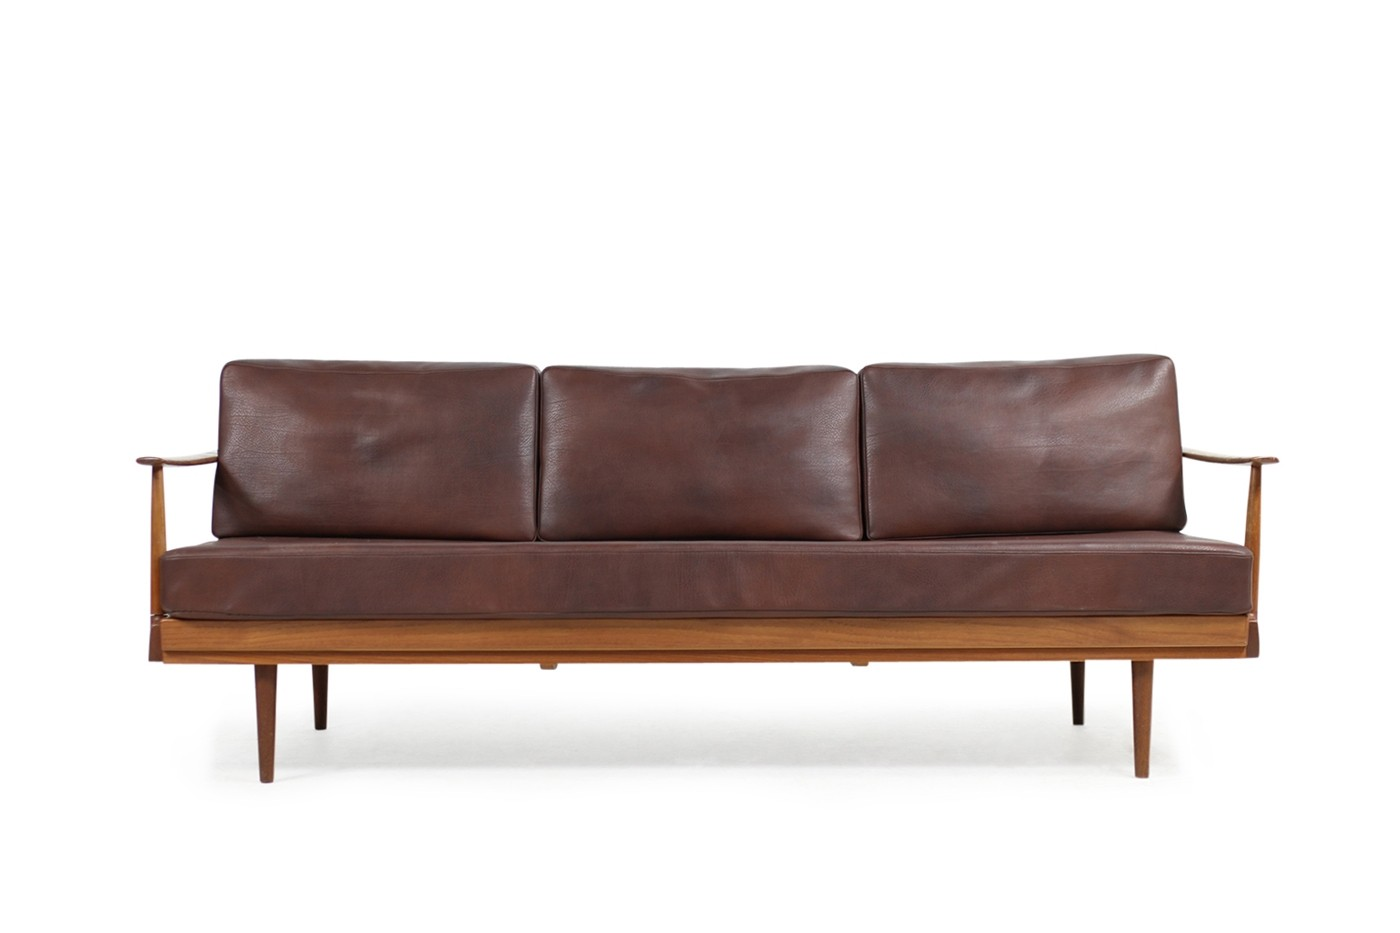 sold rare 1960s knoll antimott daybed teak leather sofa. Black Bedroom Furniture Sets. Home Design Ideas